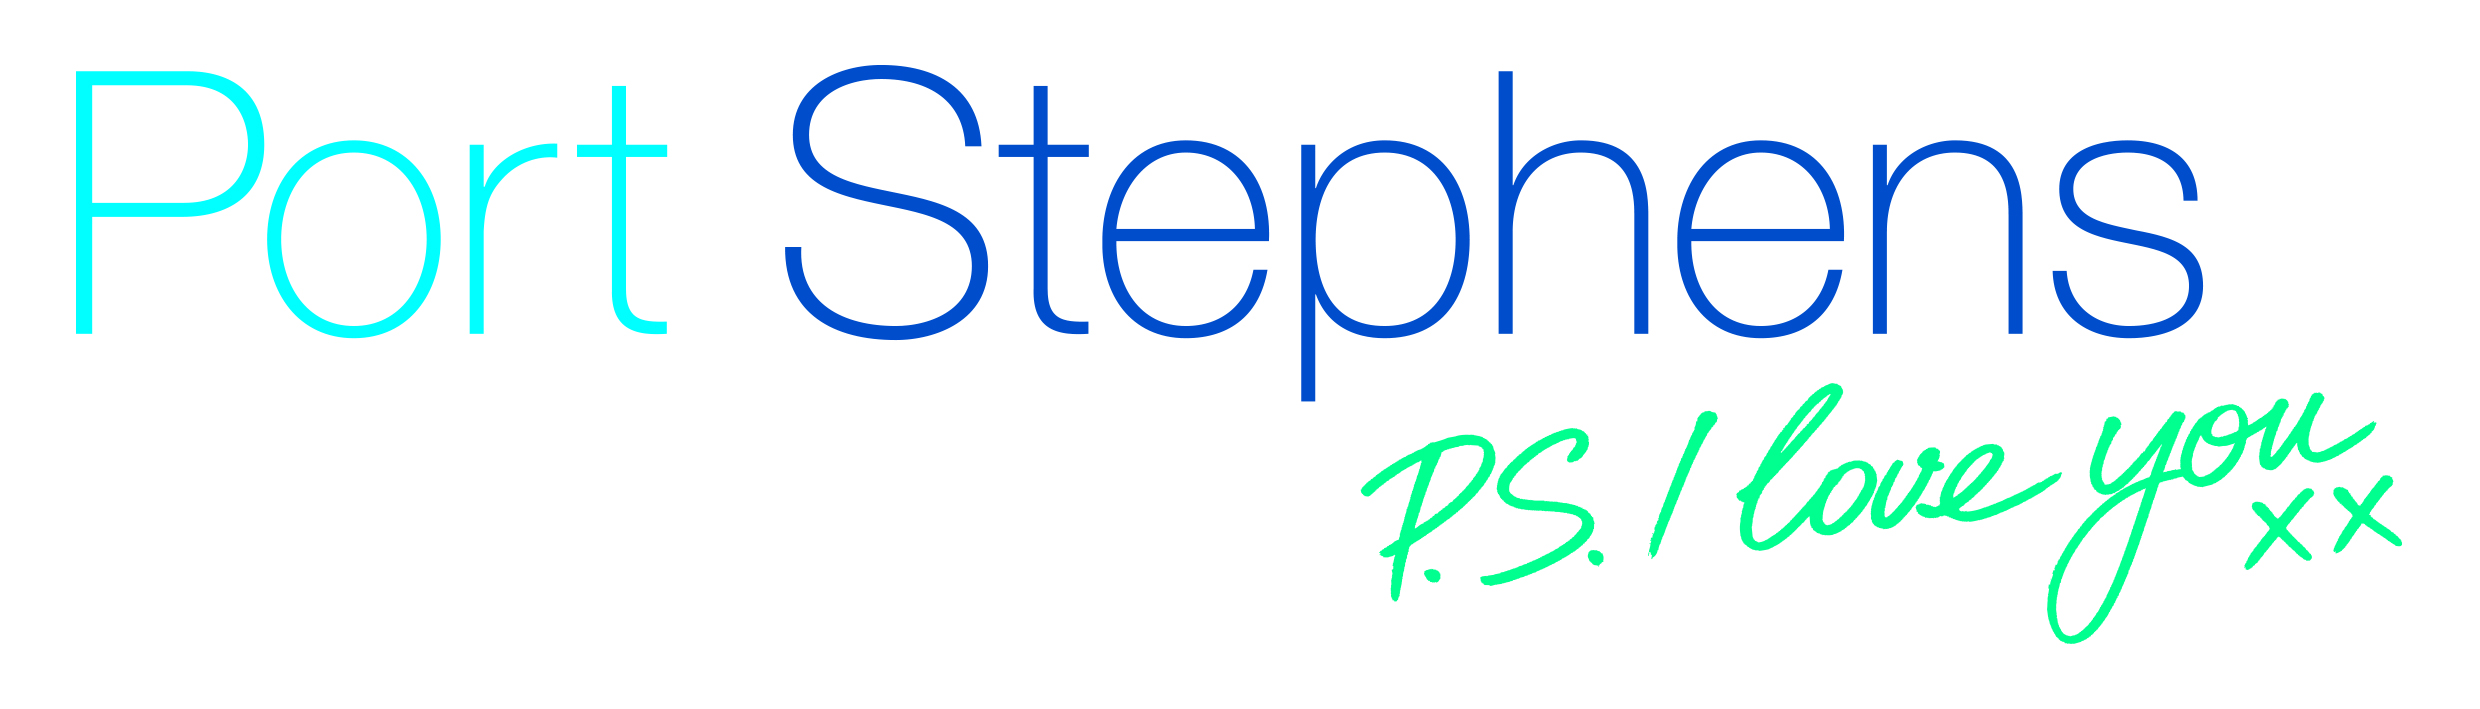 Destination Port Stephens, Port Stephens Logo